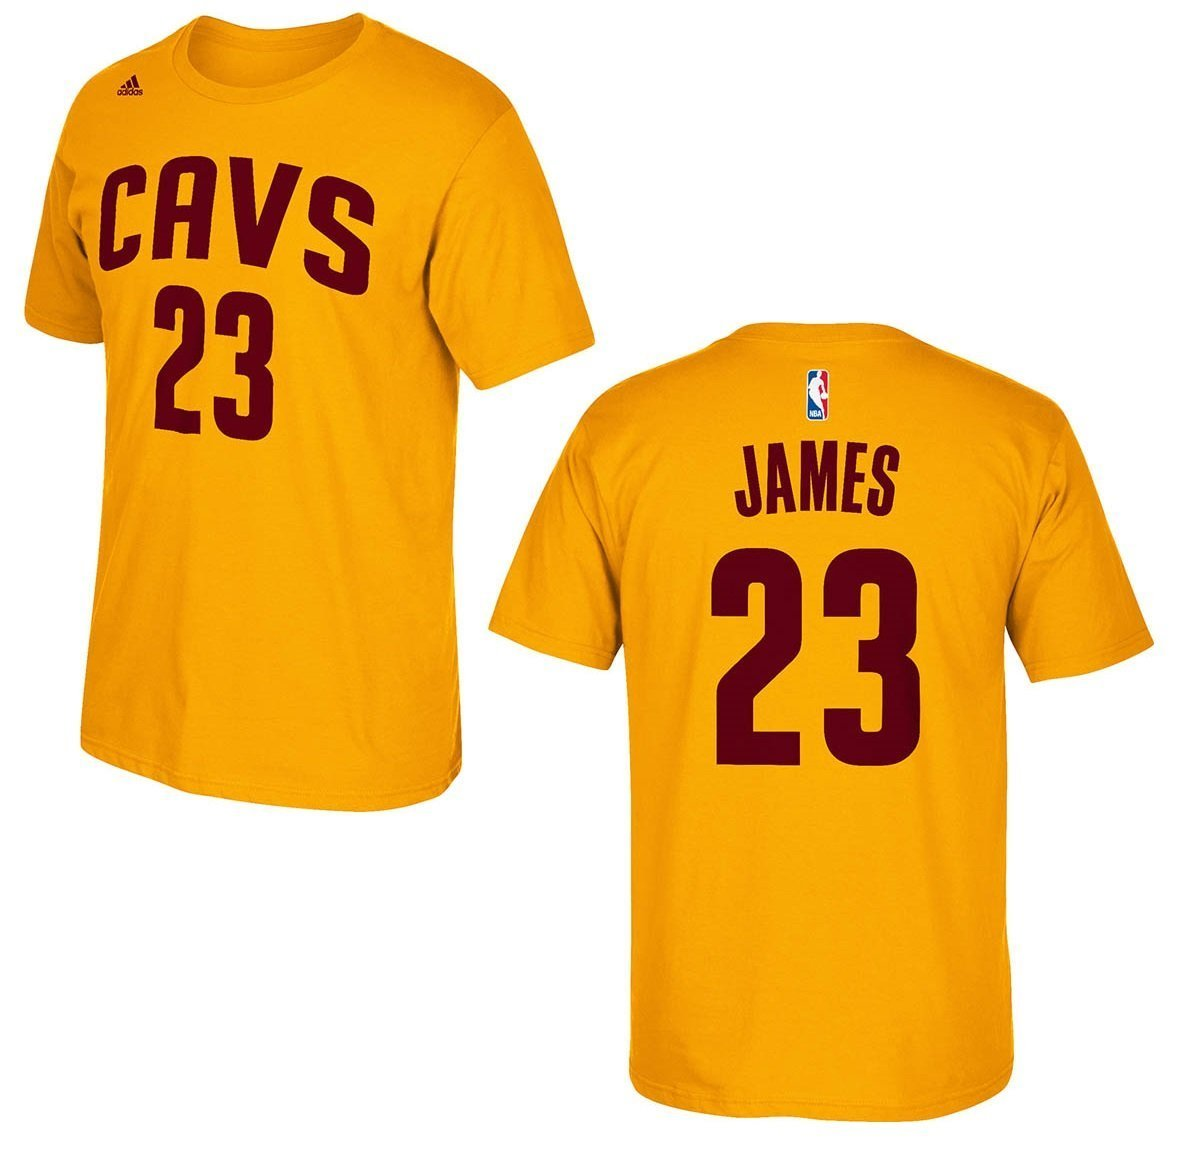 Cavs black t shirt jersey - Amazon Com Cleveland Cavaliers Lebron James Yellow Name And Number T Shirt Sports Outdoors